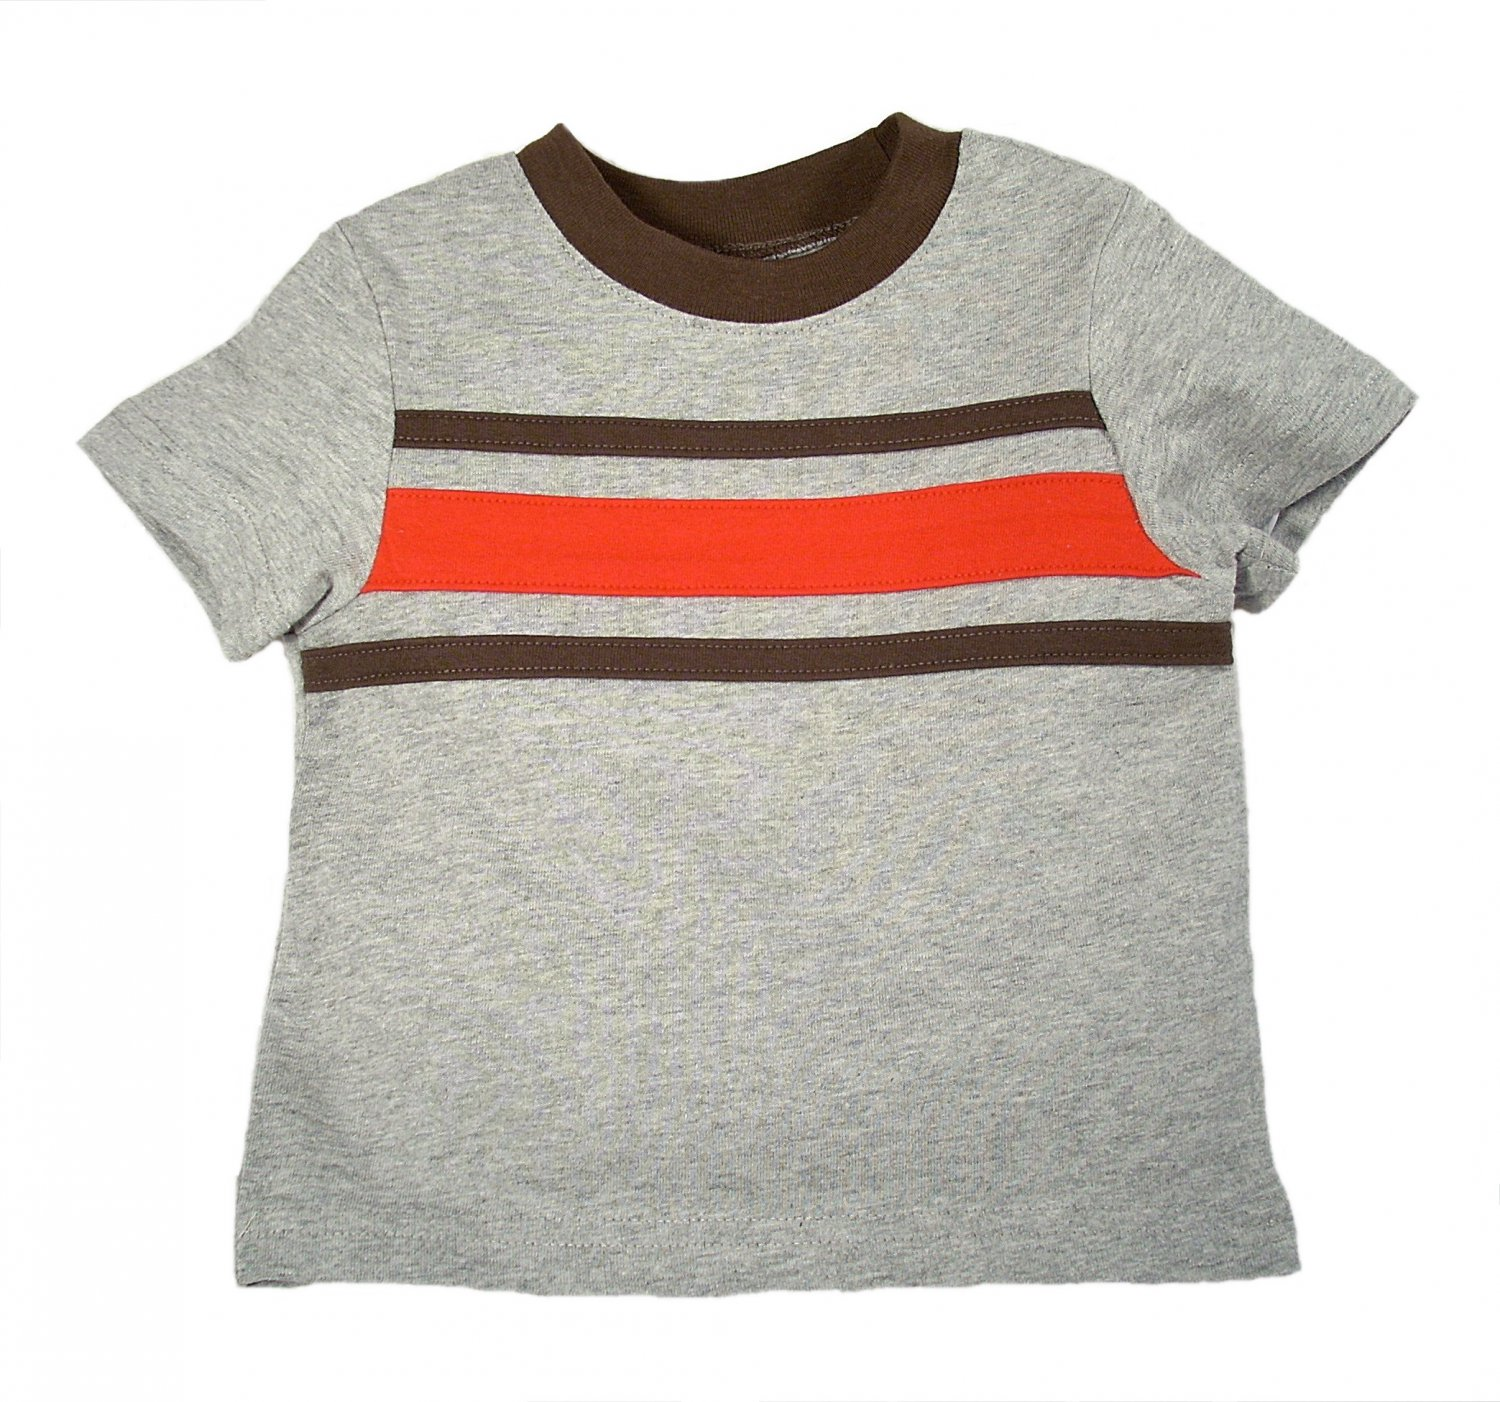 Circo Infant Boys Heather Gray Striped Cotton Short Sleeve T-Shirt 6 Months